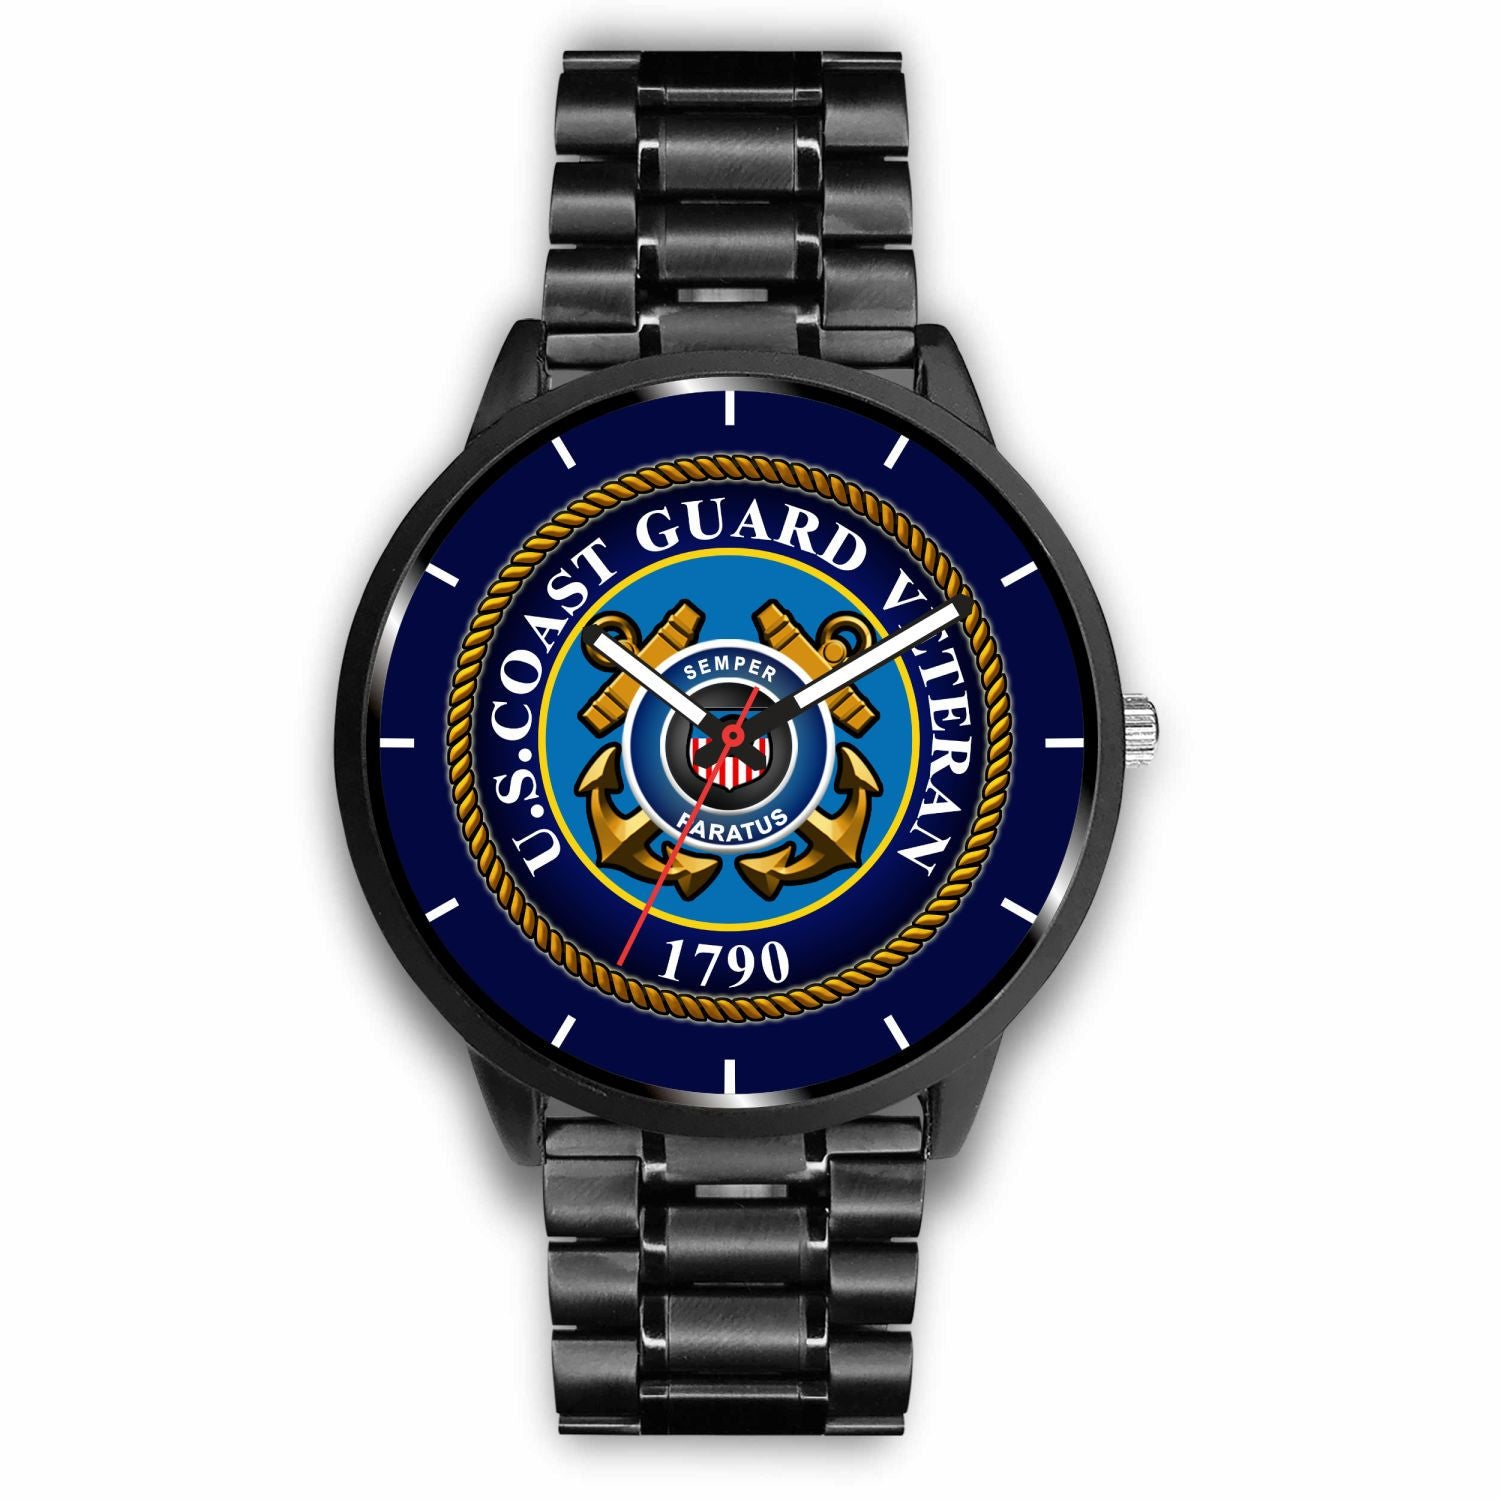 Buy U.S COAST GUARD VETERAN WATCH - Familyloves hoodies t-shirt jacket mug cheapest free shipping 50% off